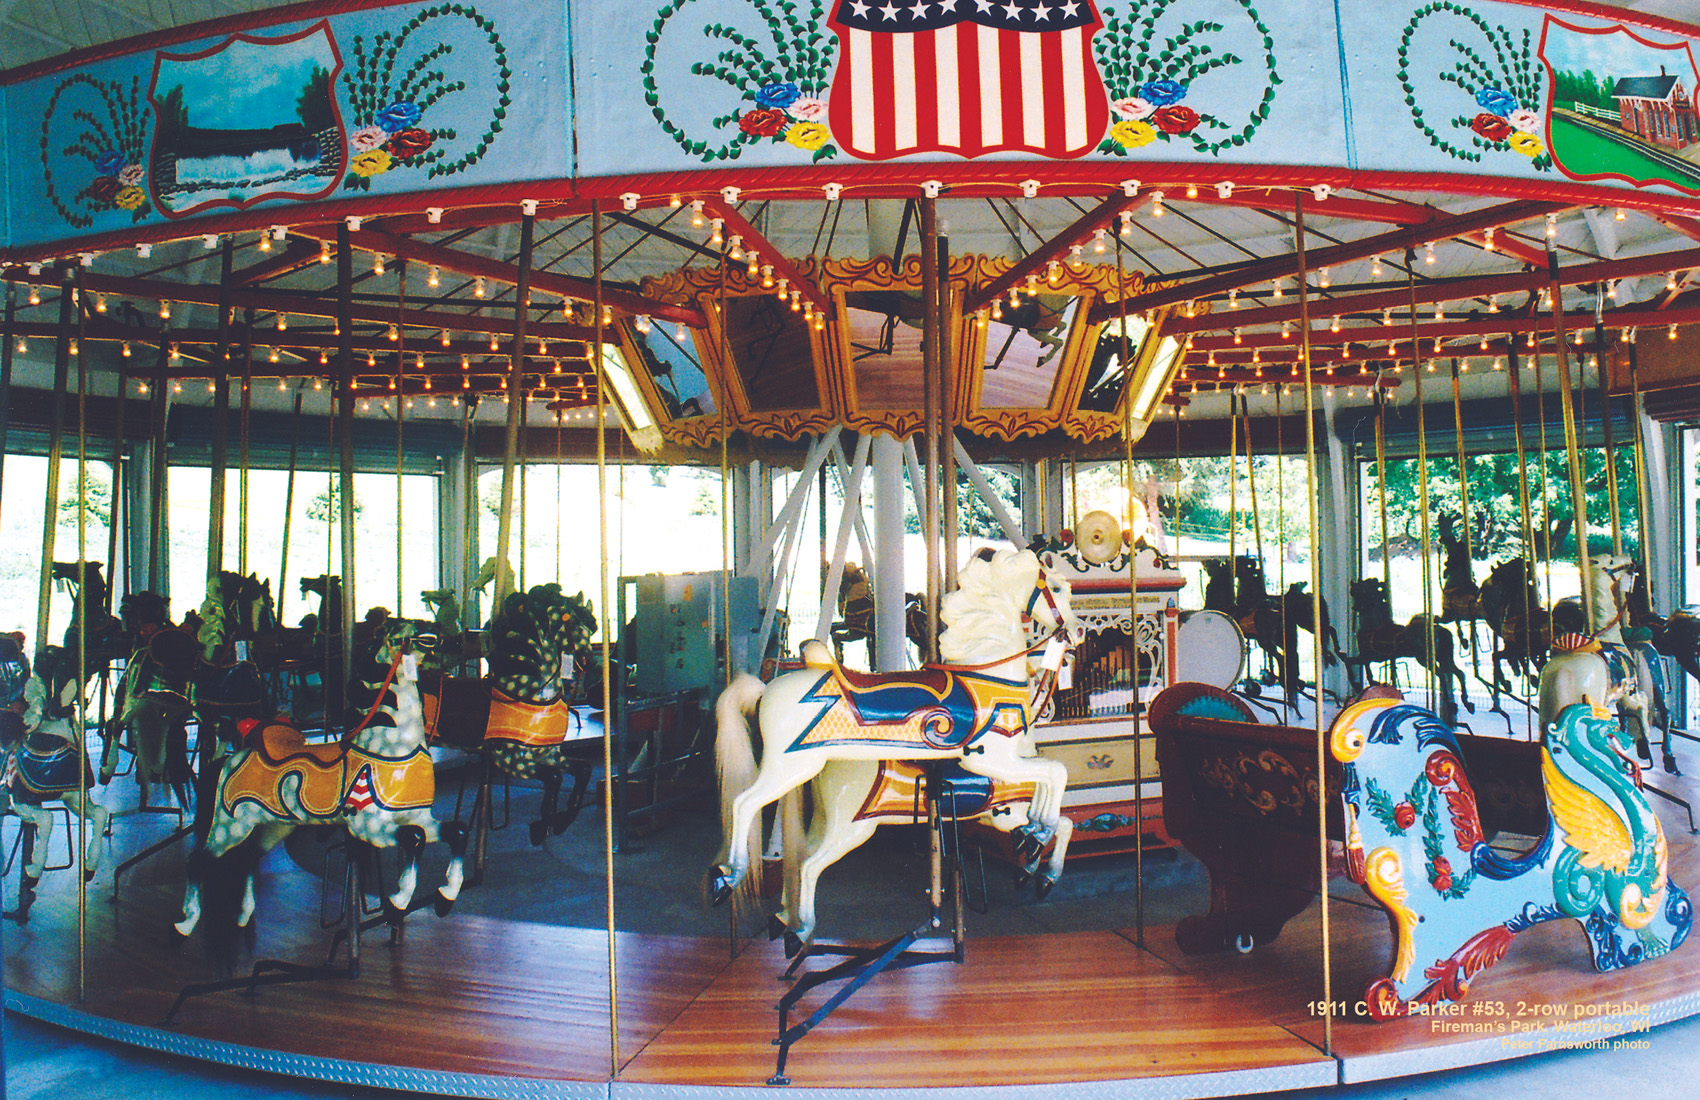 1911-C-W-Parker-carousel-Waterloo-WI-CNT-center-Sept_11